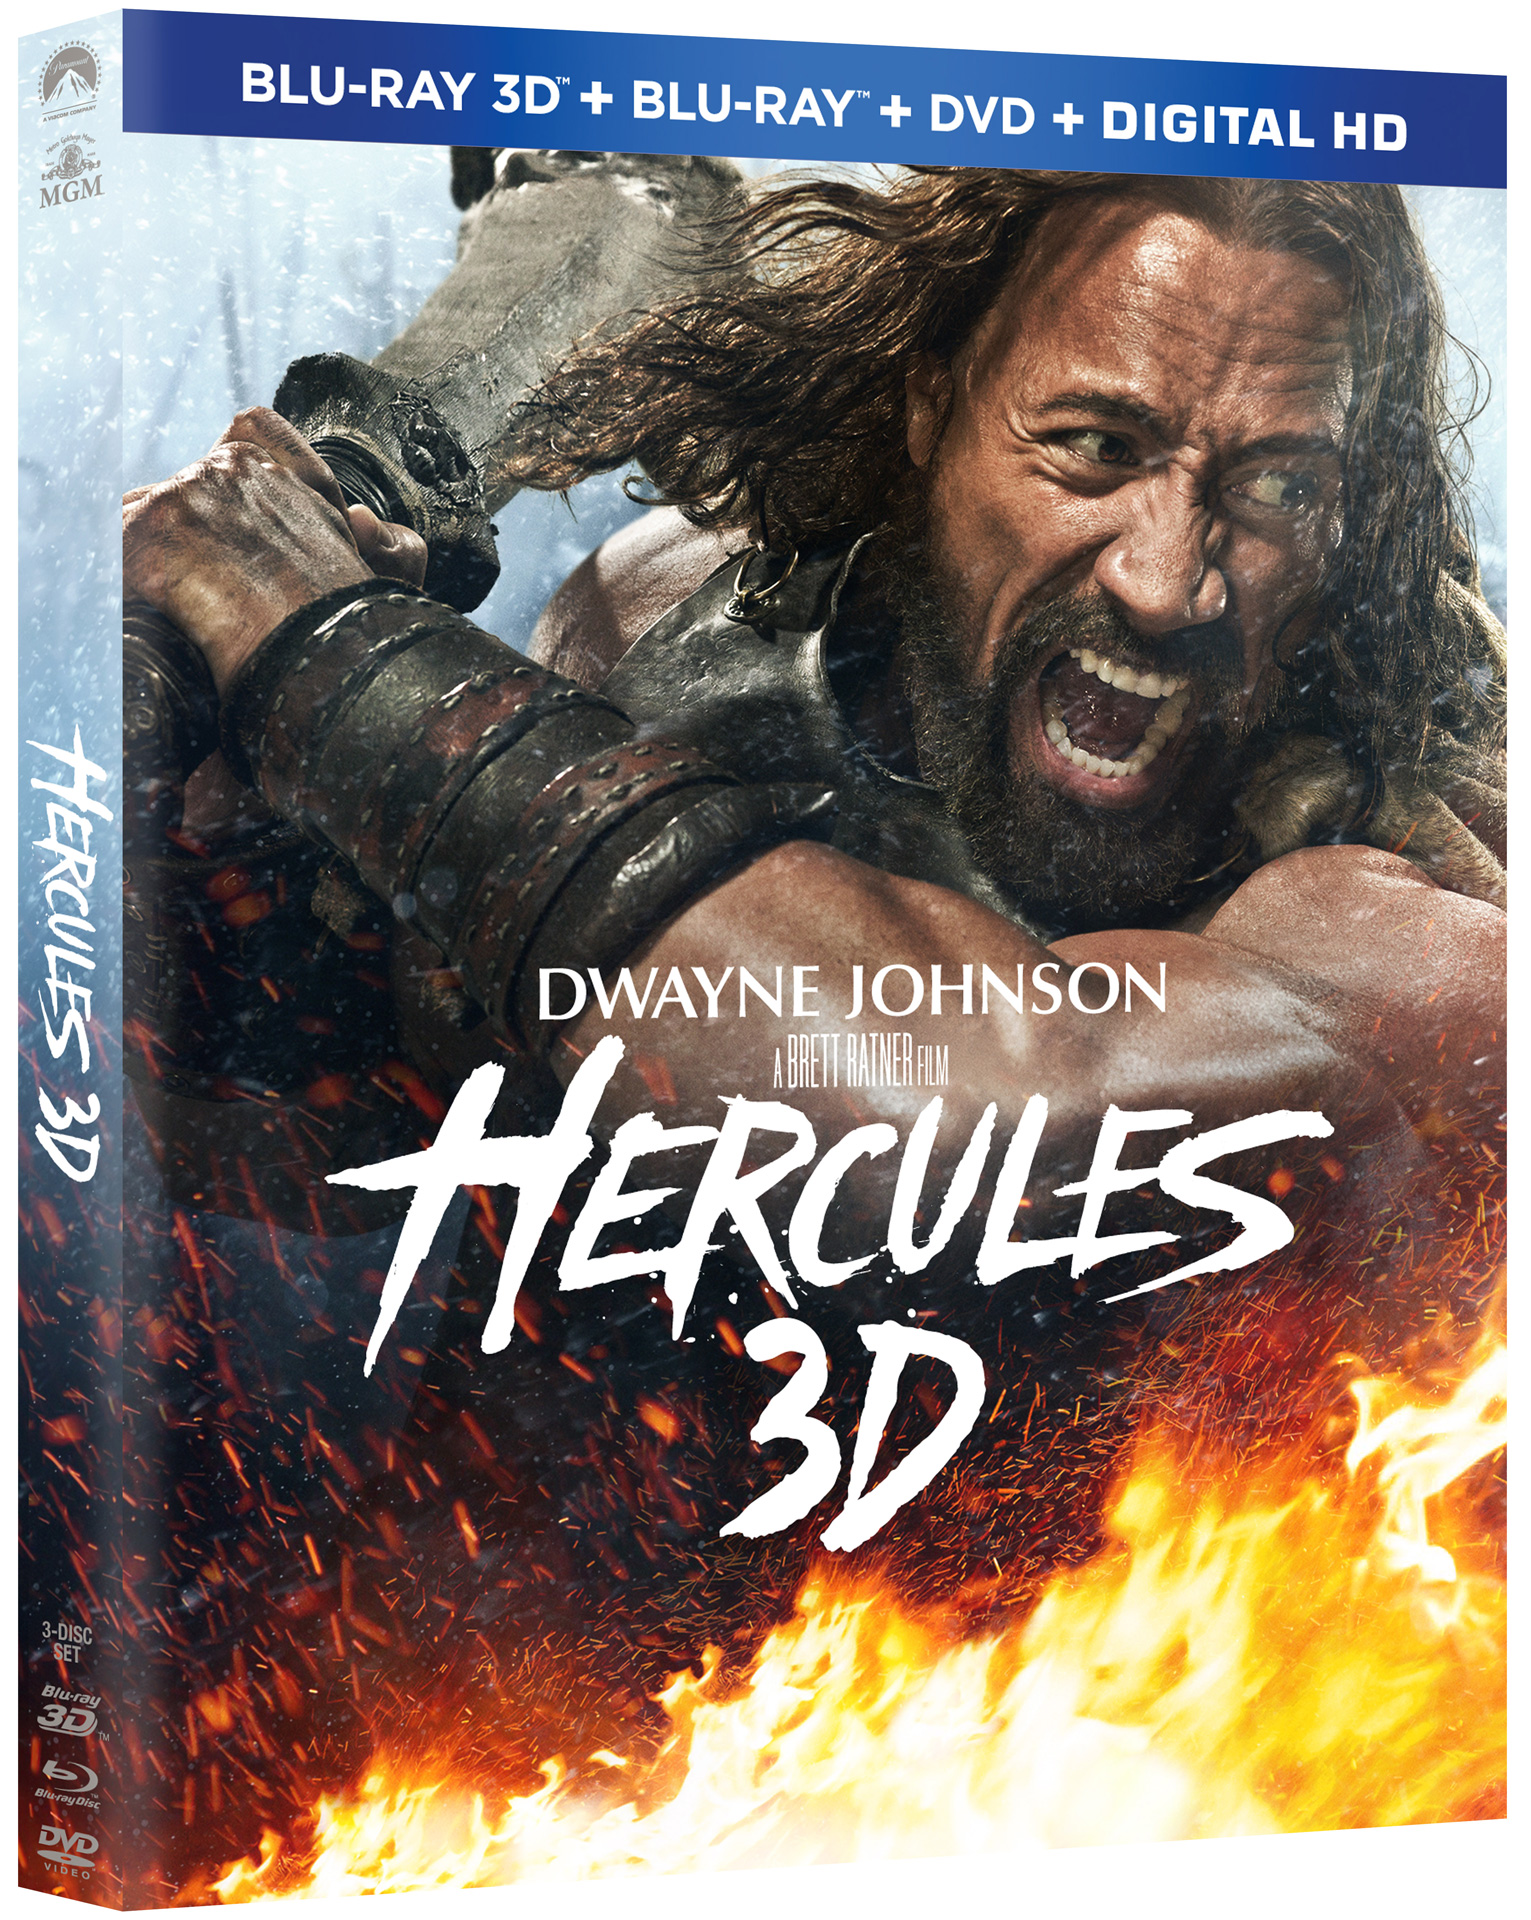 Hercules Extended Cut Starring The Rock Headed to Blu-ray ...